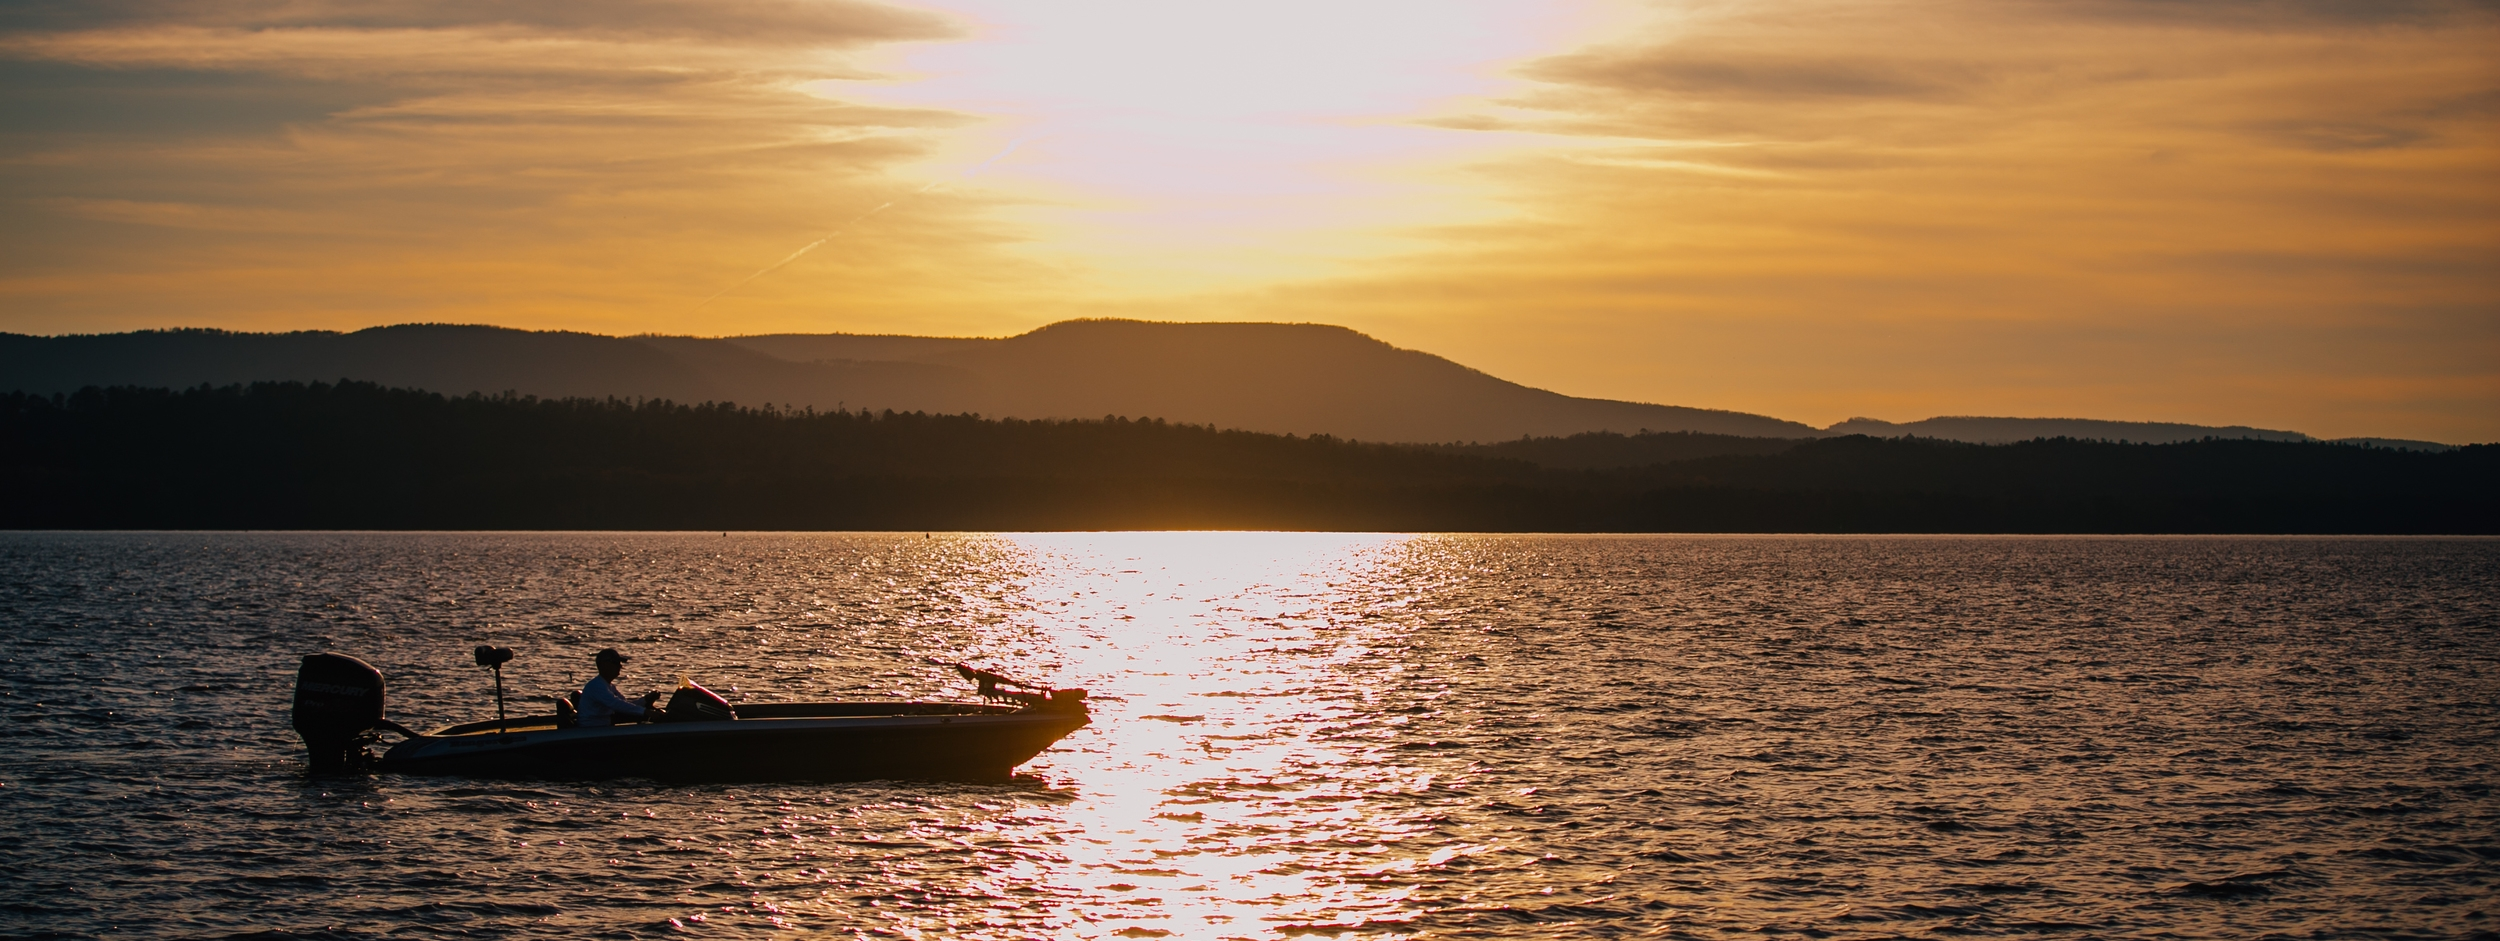 Covering more than 34,000 acres, Lake Dardanelle is filled with tournament-worthy bass.